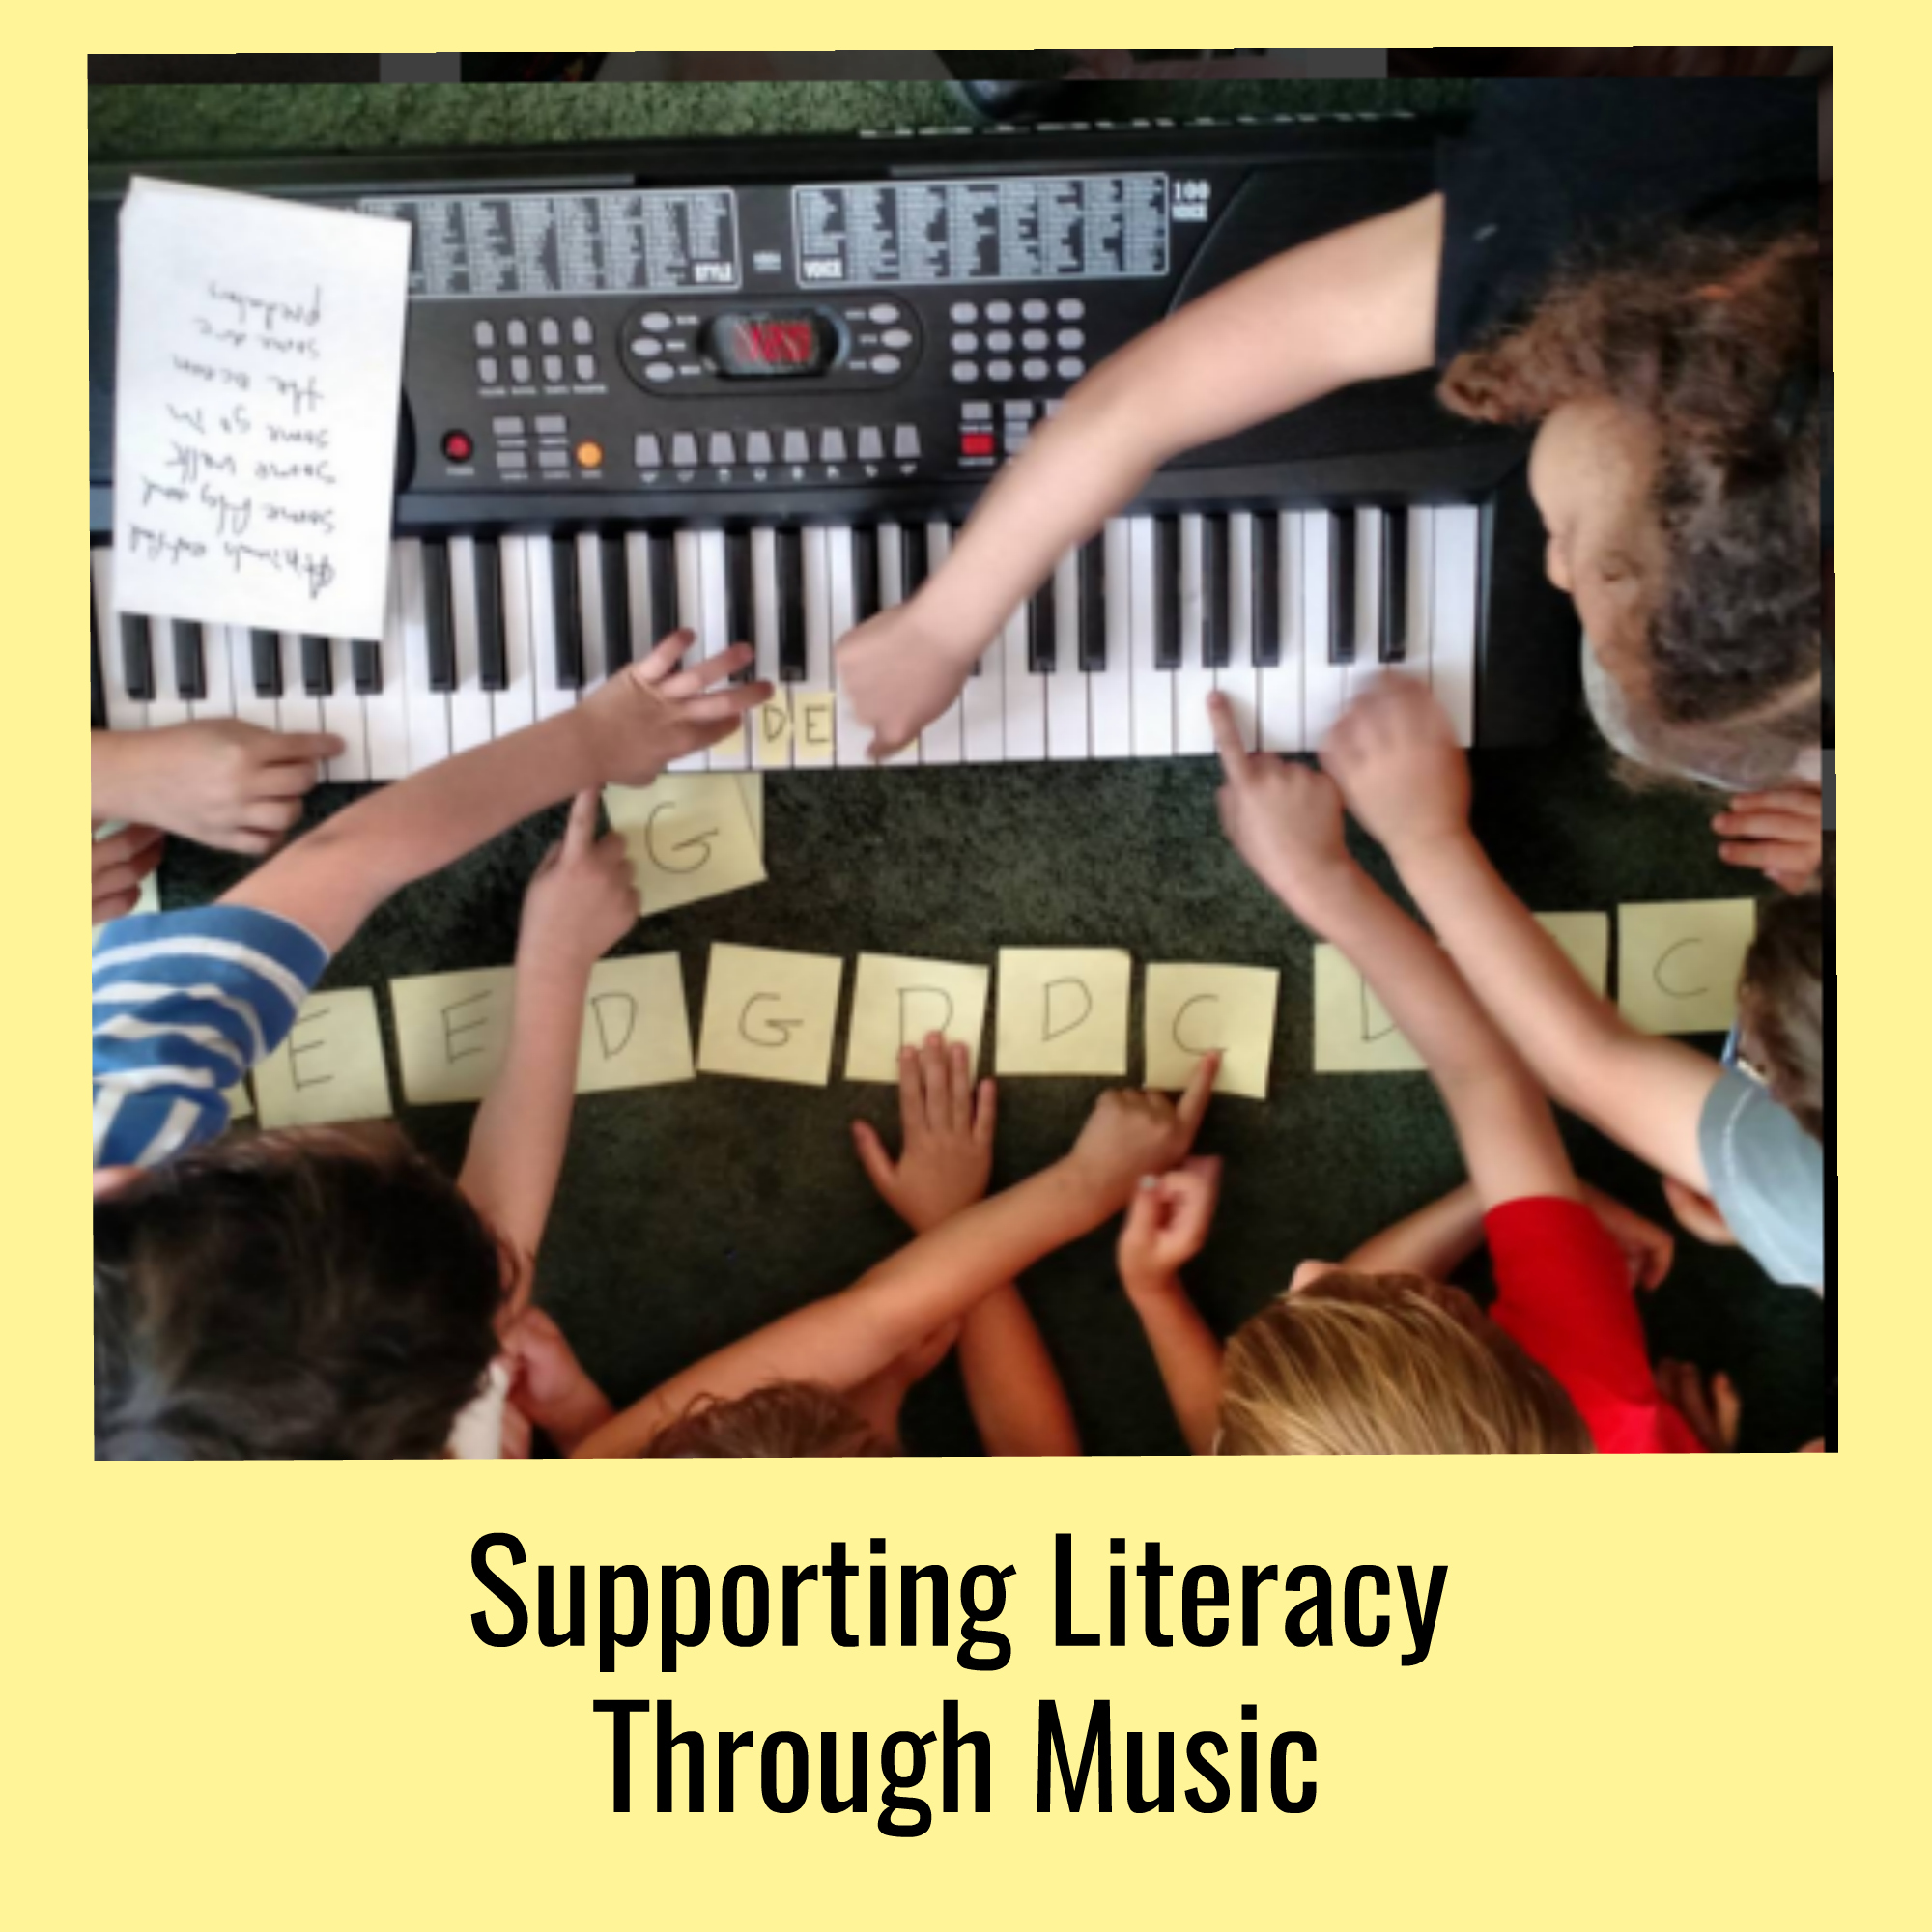 Supporting Literacy Through Music